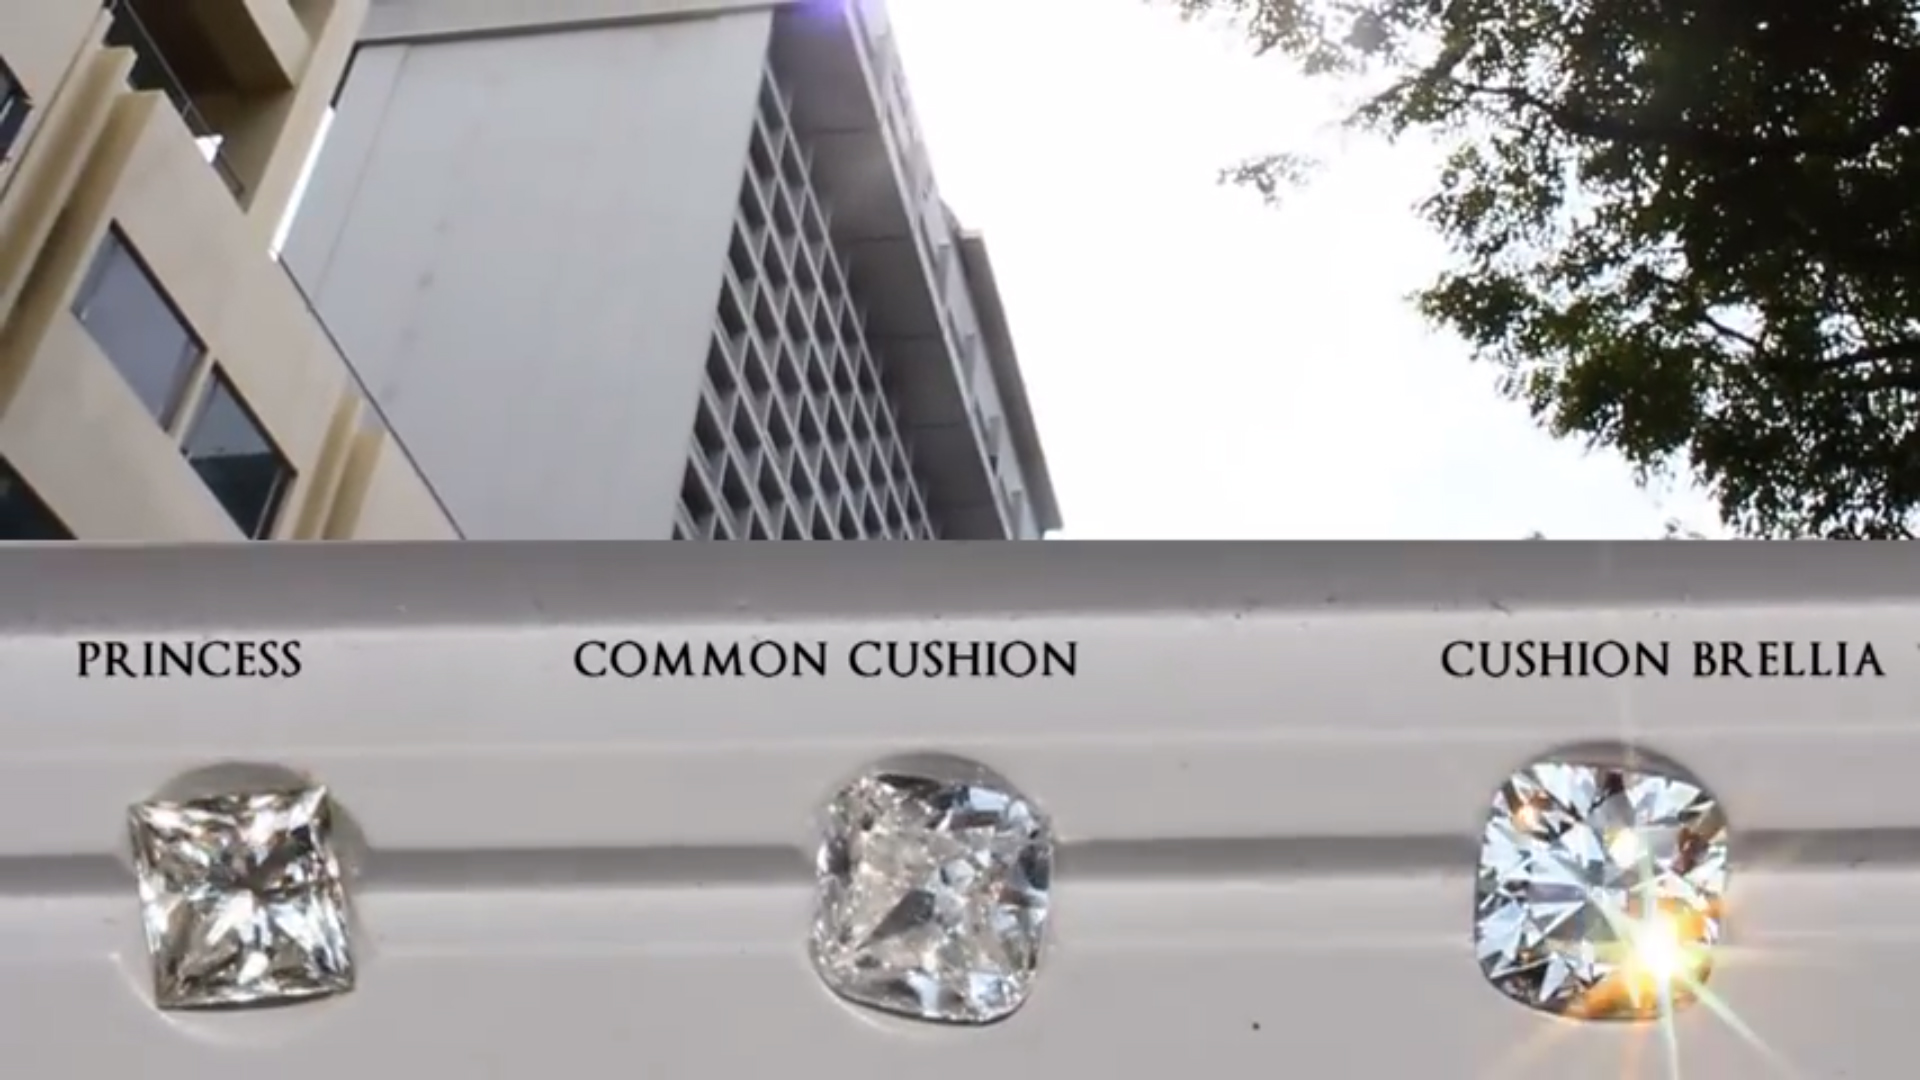 JannPaul: Daylight Analysis of the Common Princess Cut, Common Cushion Cut and Cushion Brellia